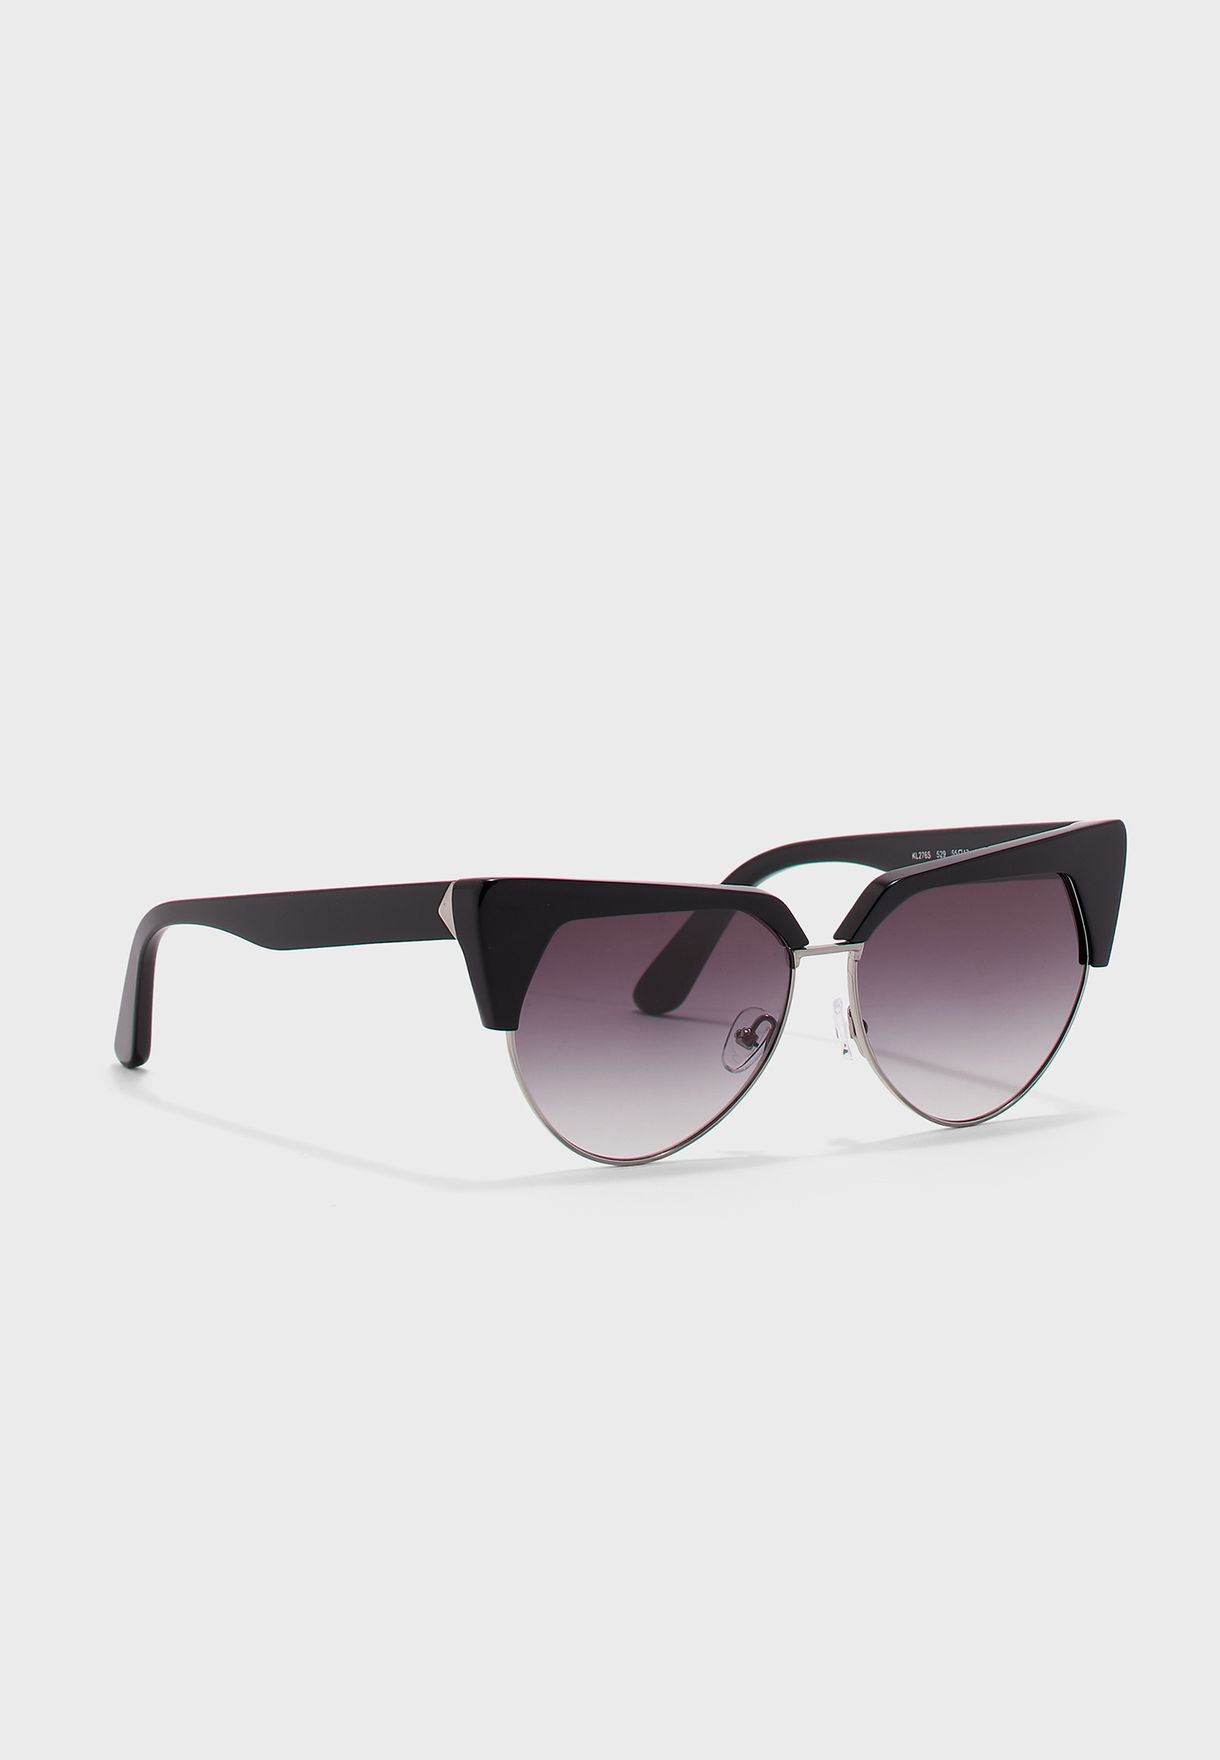 KL276S Oversized Sunglasses